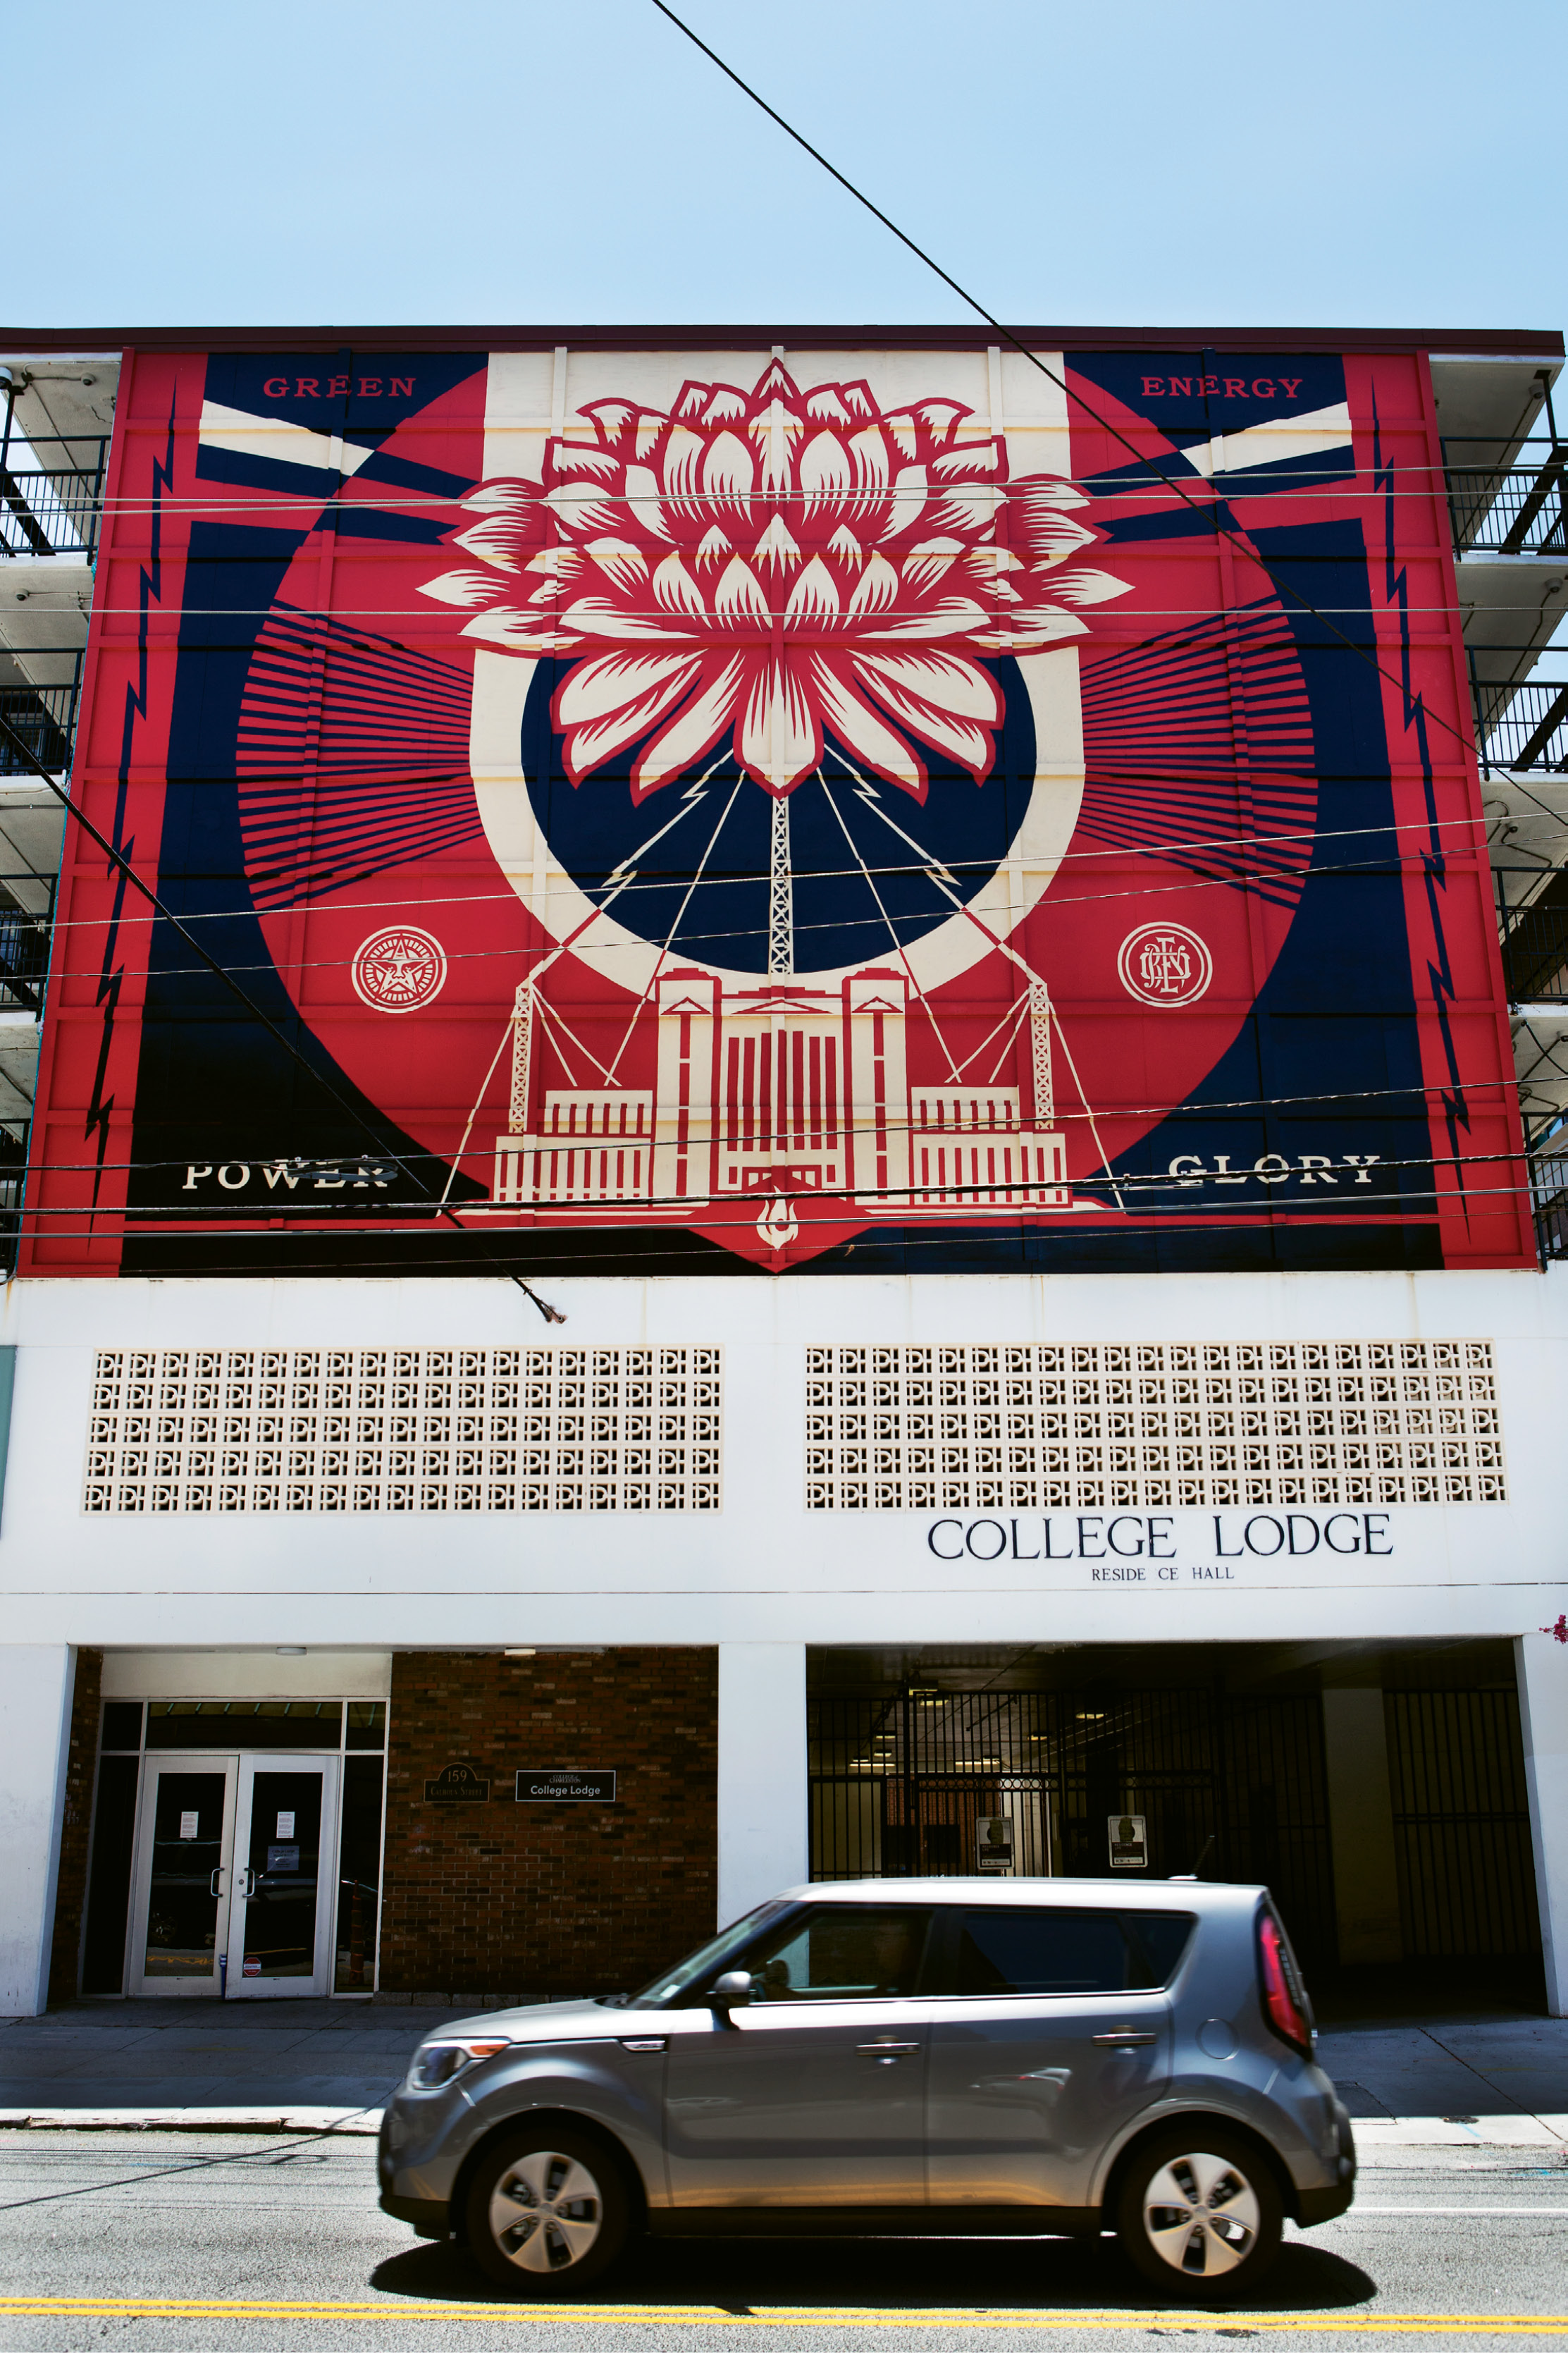 Power & Glory  by Shepard Fairey  May 2014 - College Lodge (159 Calhoun St.)